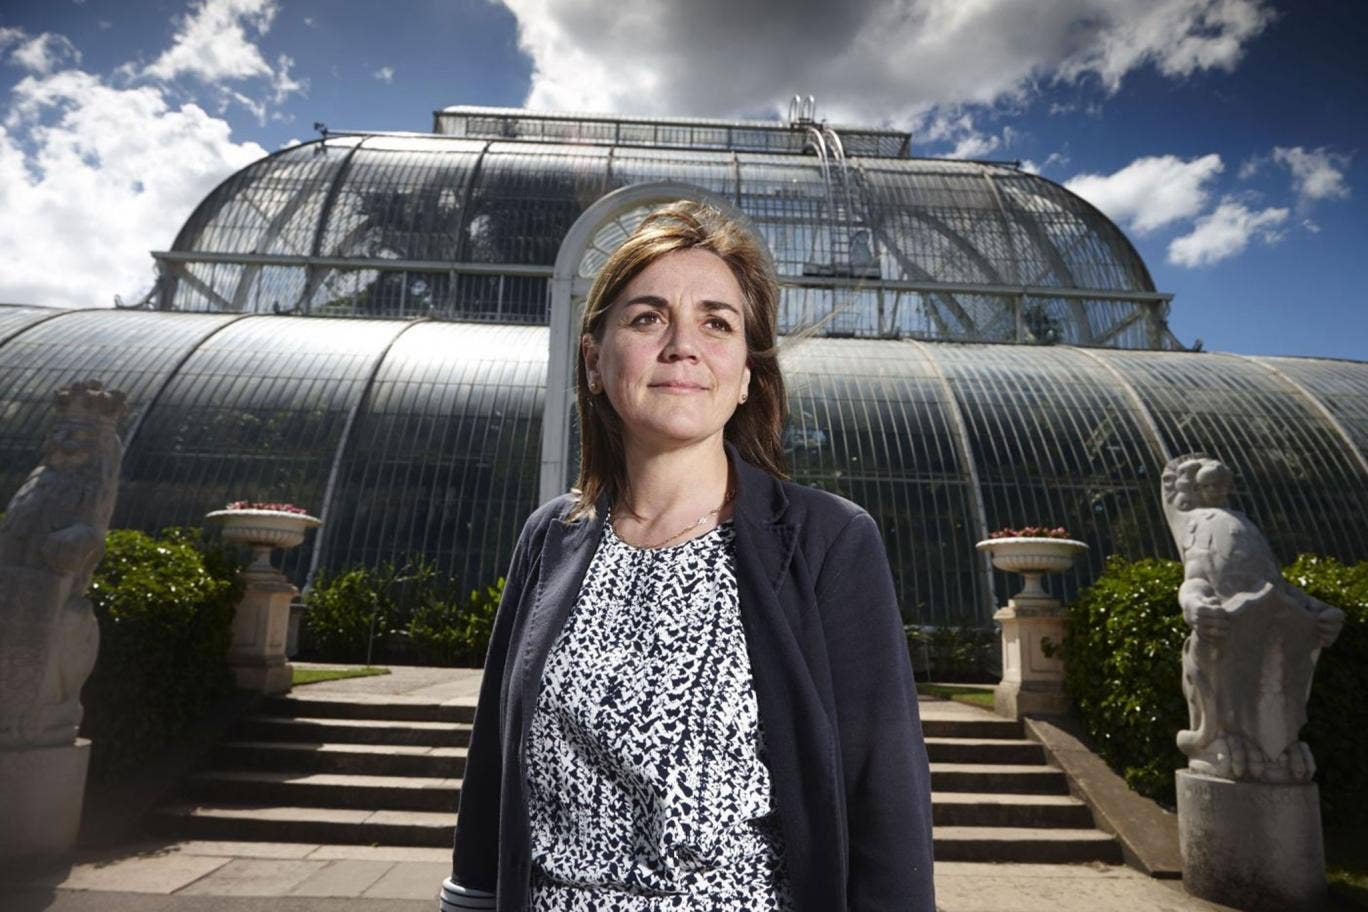 Professor Kathy Willis, Head of Science at the Royal Botanical Gardens in Kew, presented the epic 25-part investigation